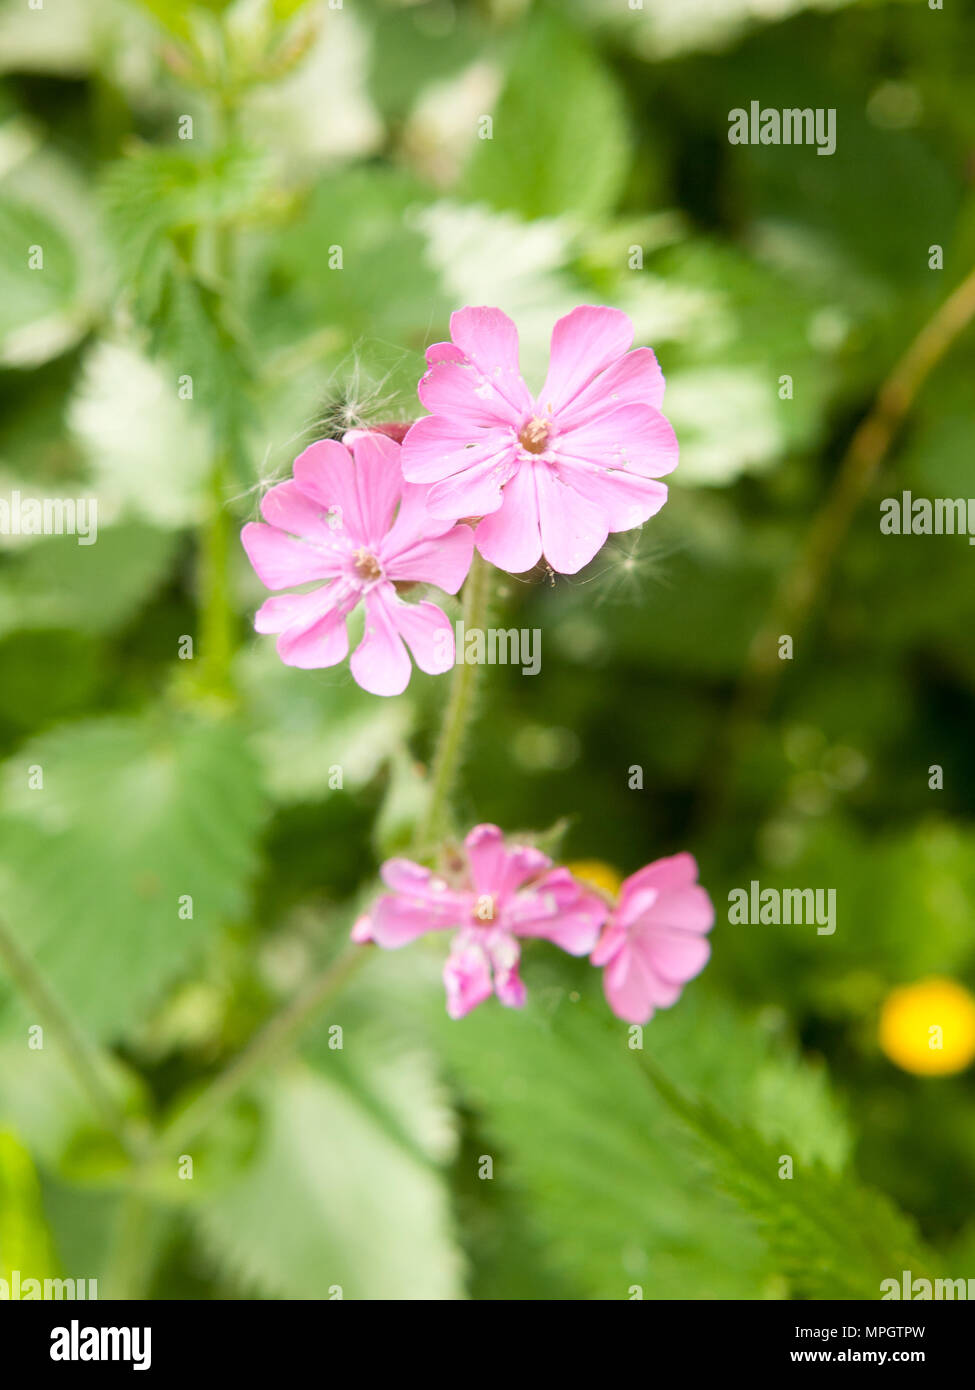 Pink campion flower stock photos pink campion flower stock images close up of beautiful pink campion flower head spring essex england uk mightylinksfo